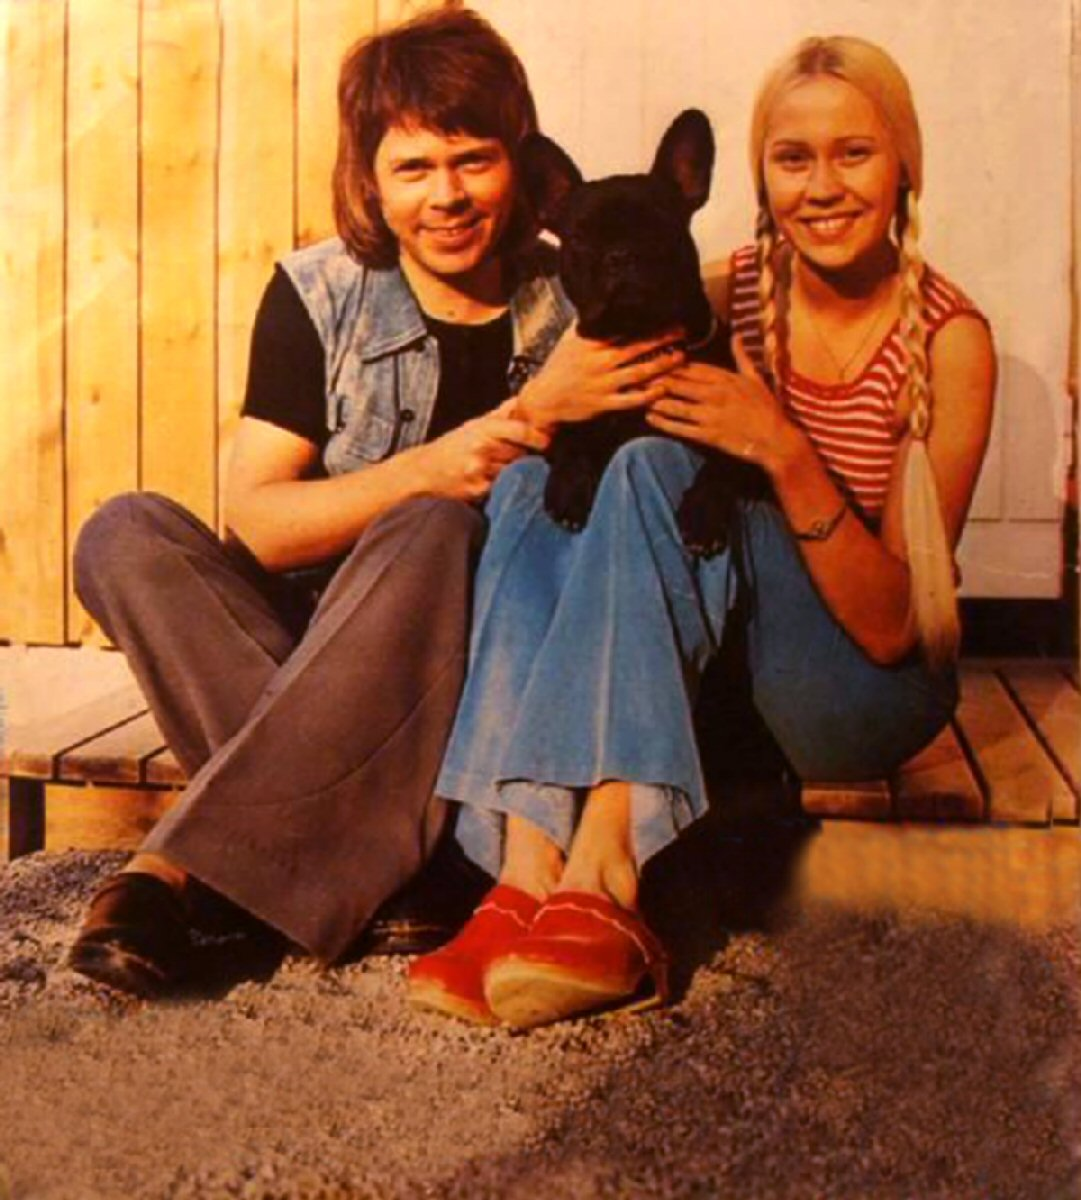 agnetha and bjorn relationship quiz